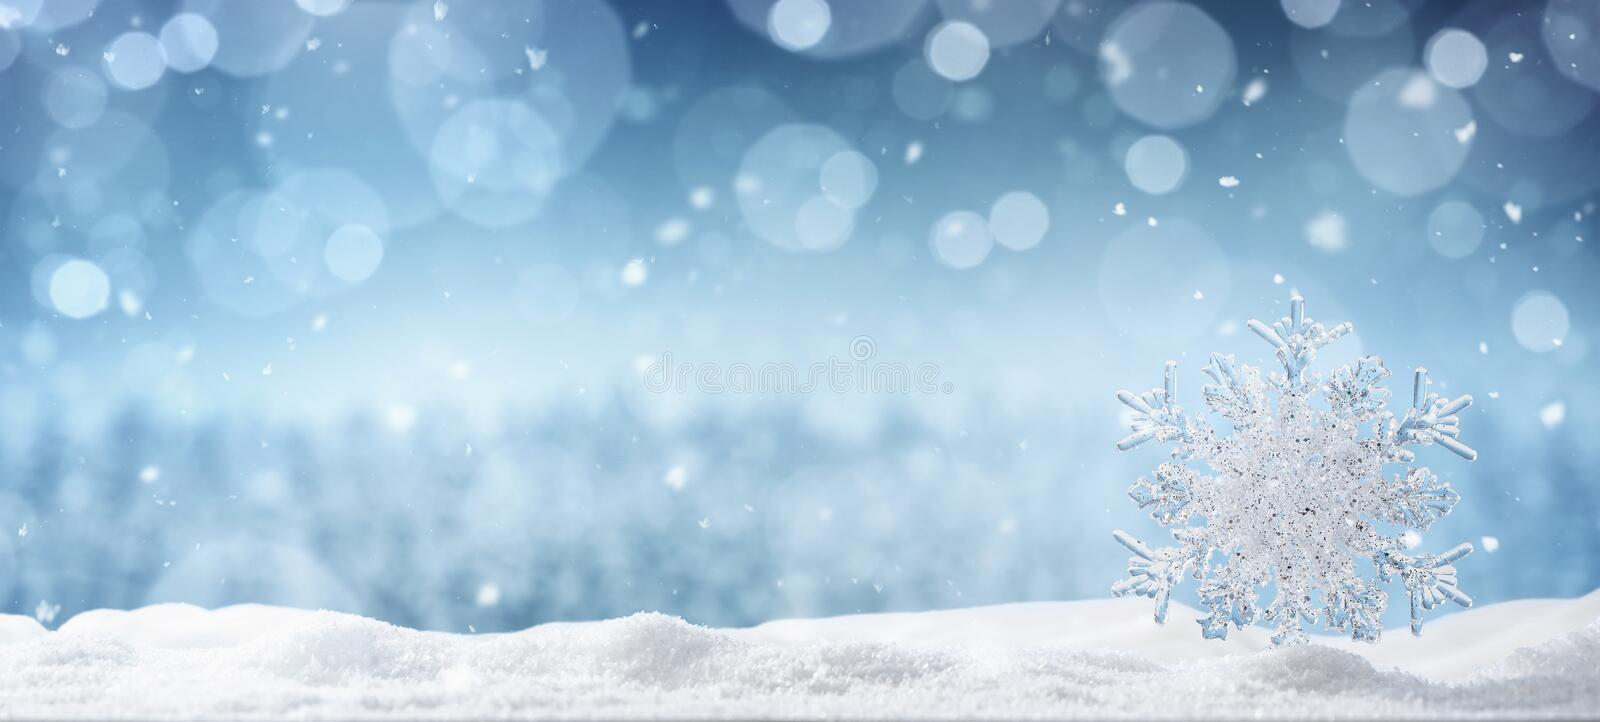 Crystal snowflake in the snow stock photos